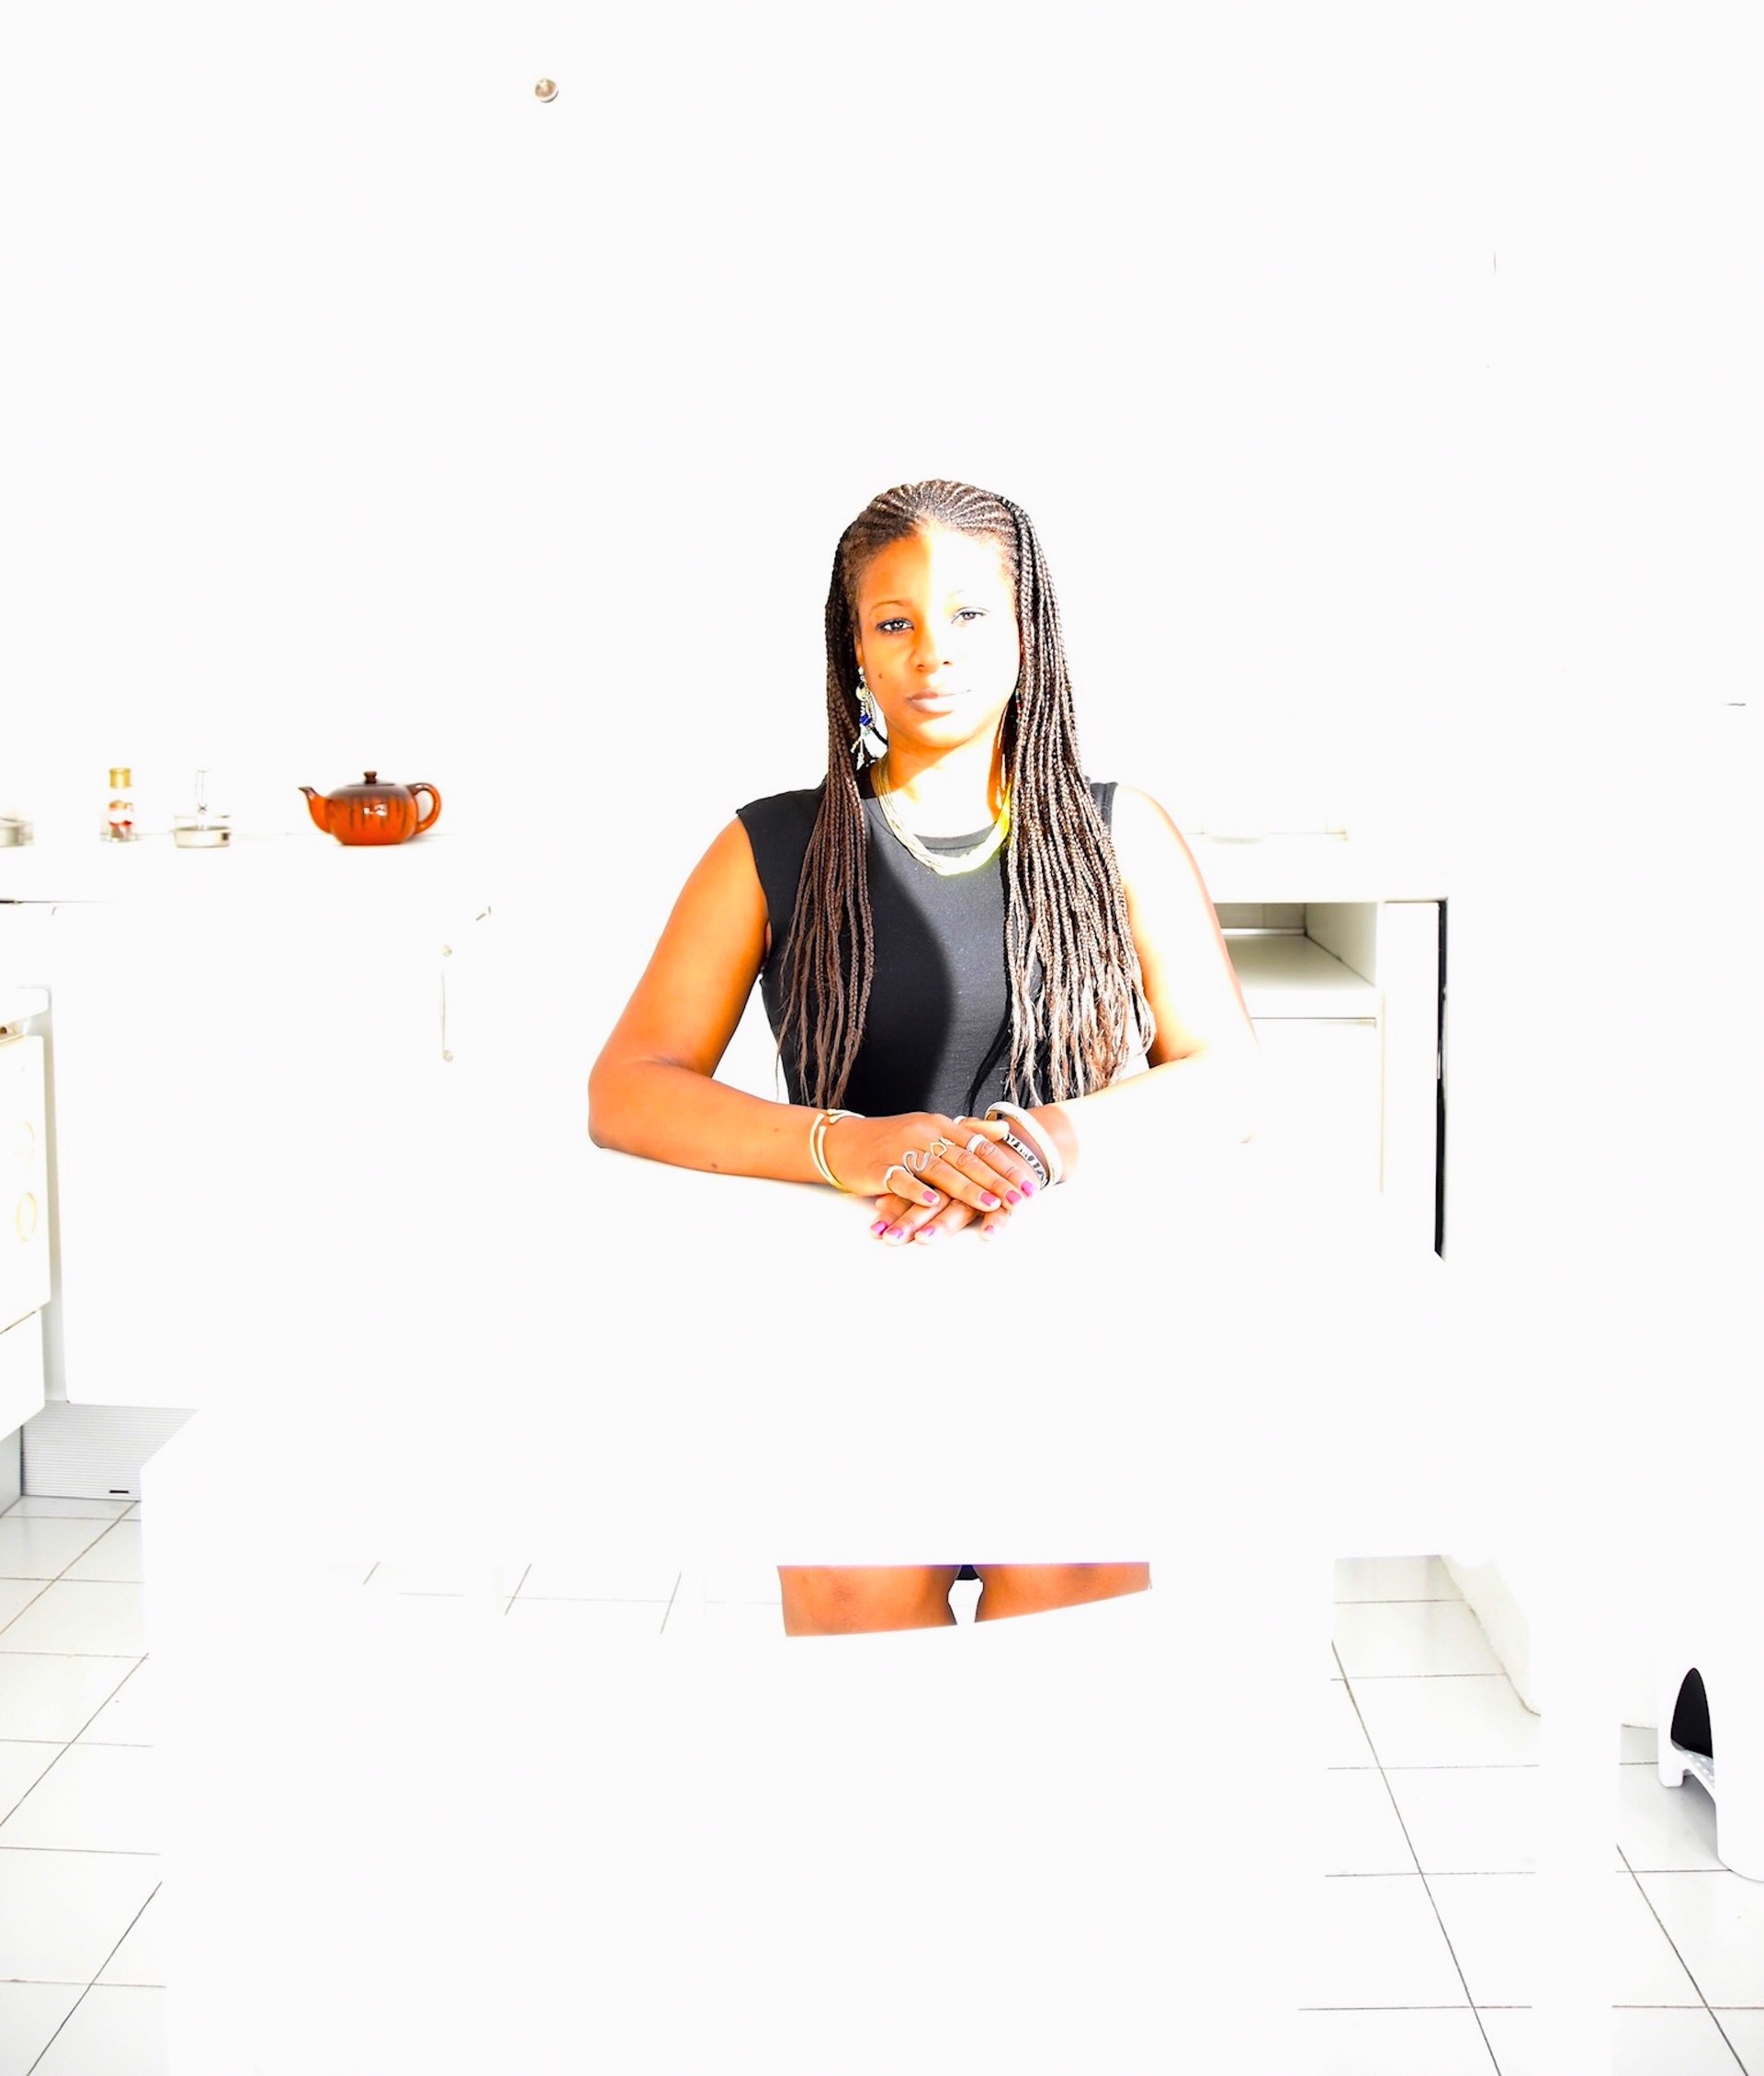 Brown Girl Seated At the White Kitchen Table 0010 by Amber Robles-Gordon